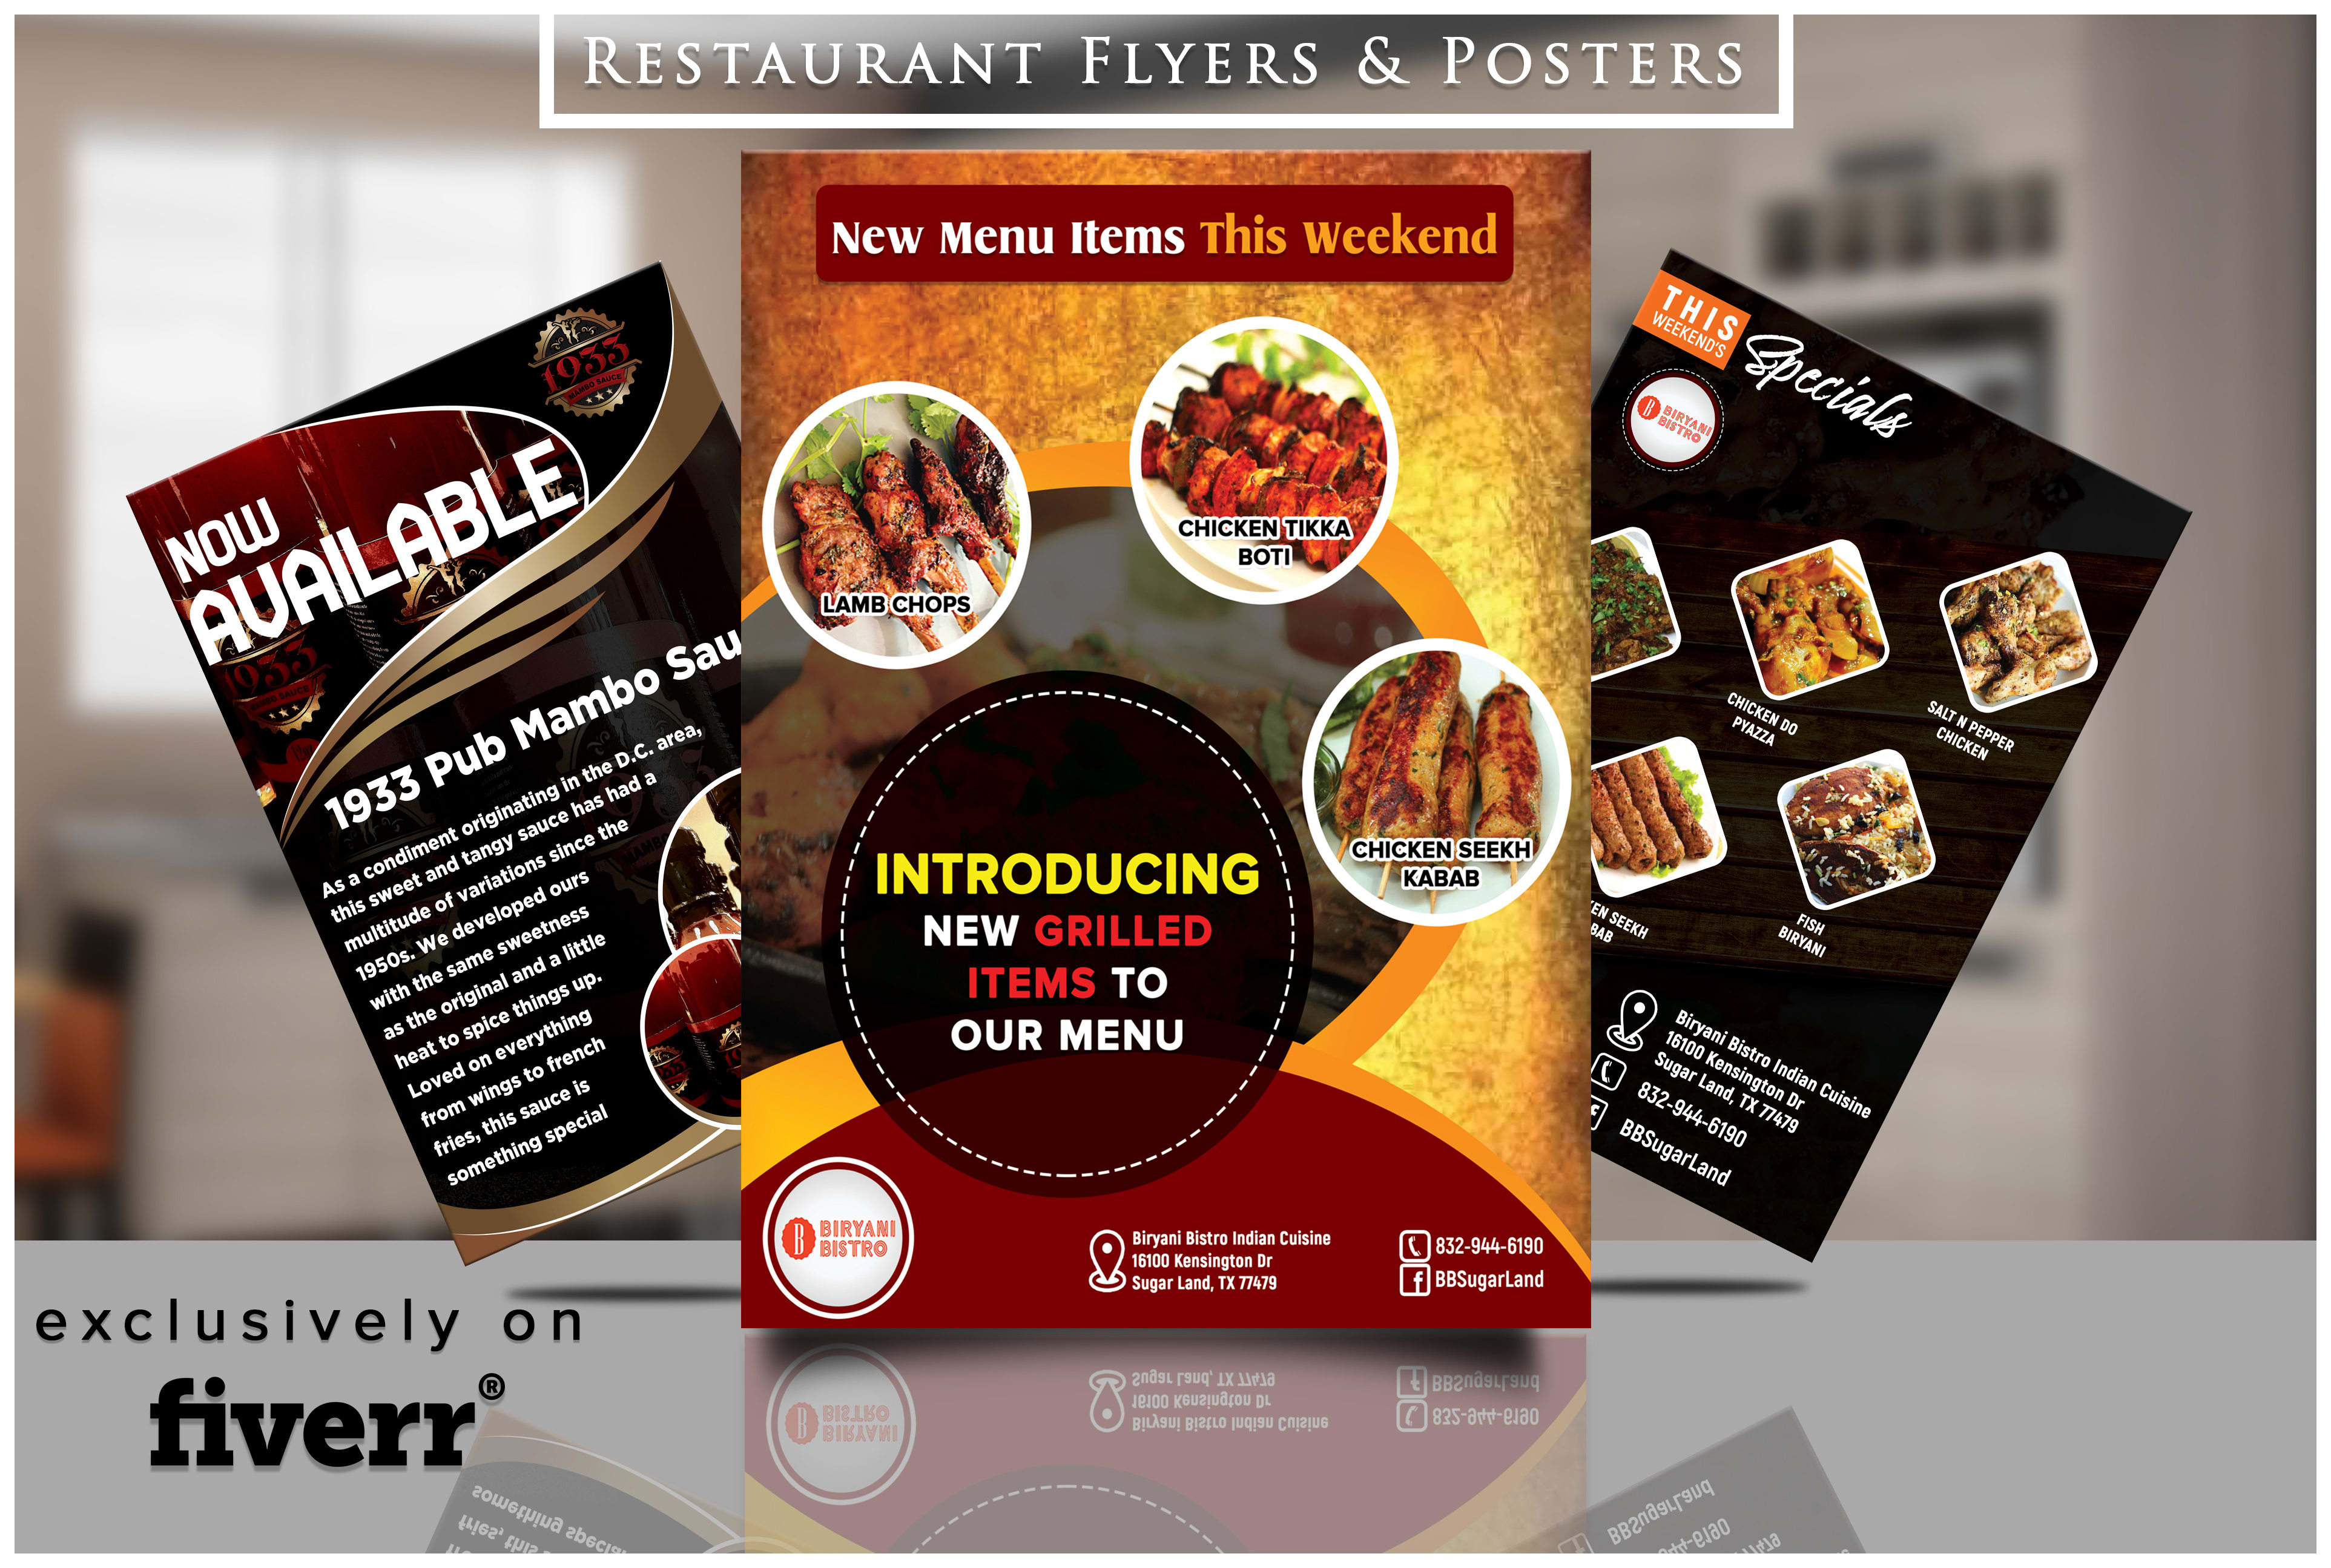 Design A Modern Restaurant Flyer Or Poster Within 24 Hours By Digimark96